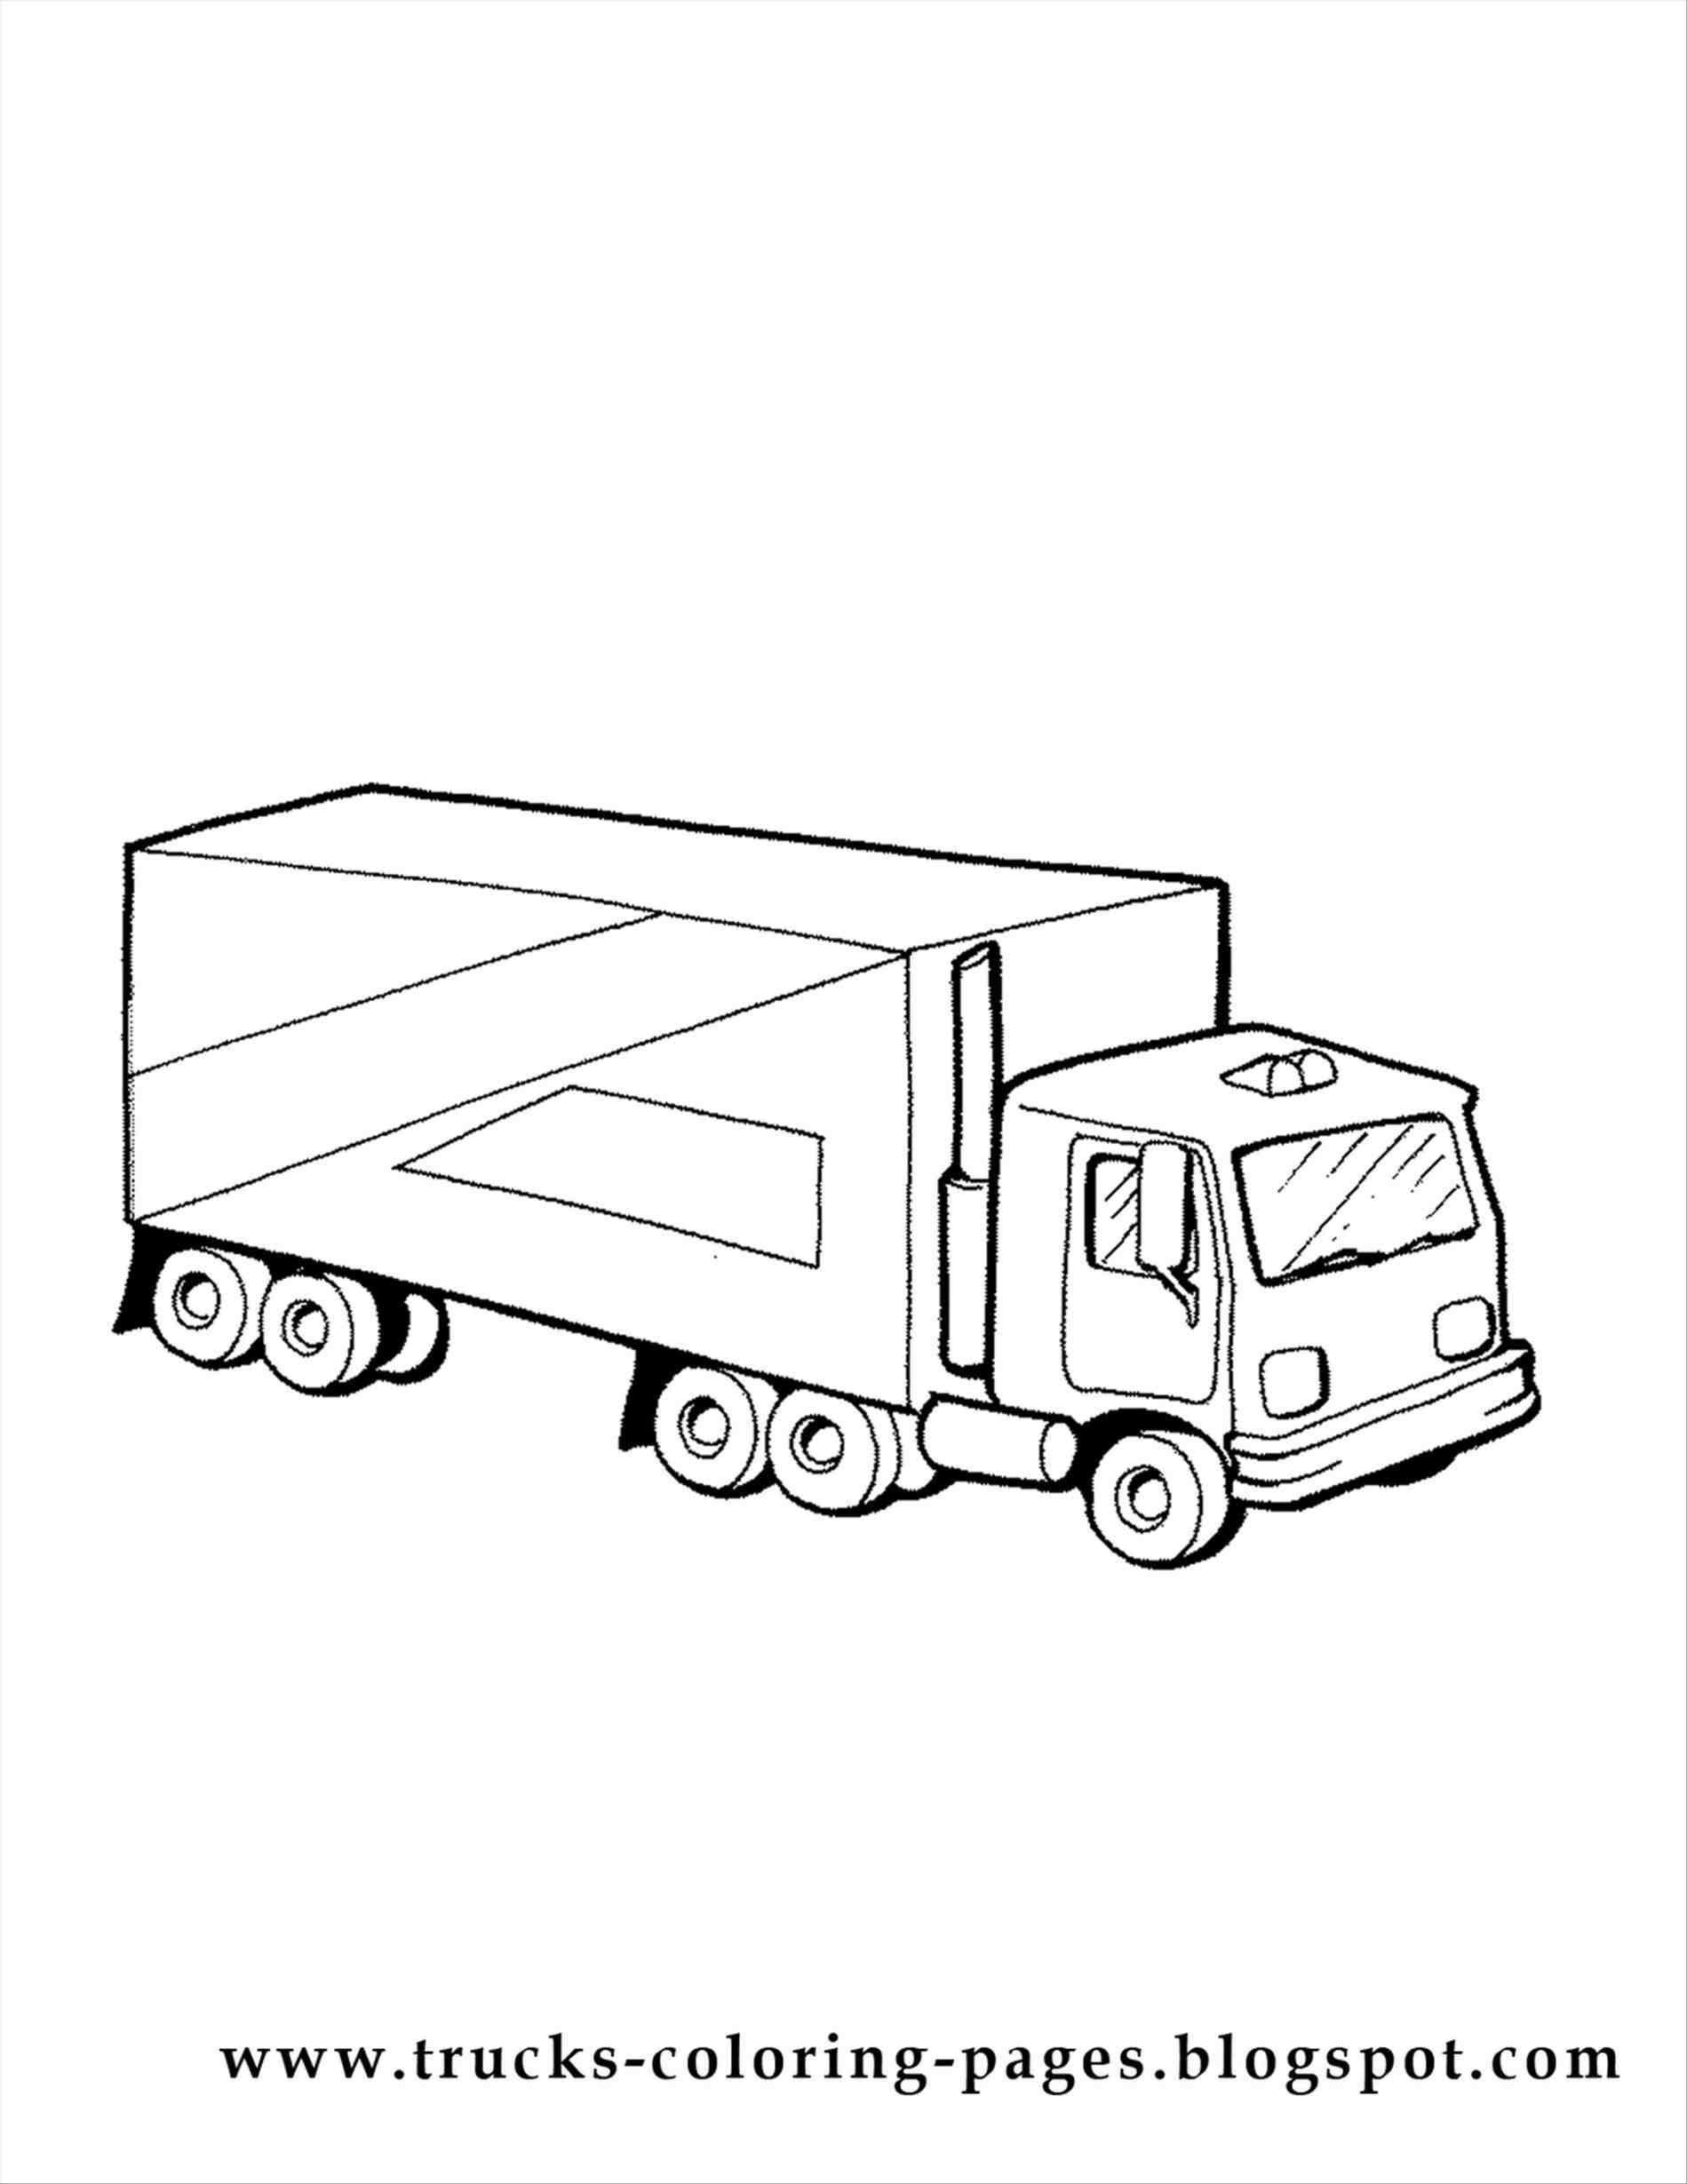 Chevy Truck Drawing at GetDrawings   Free download